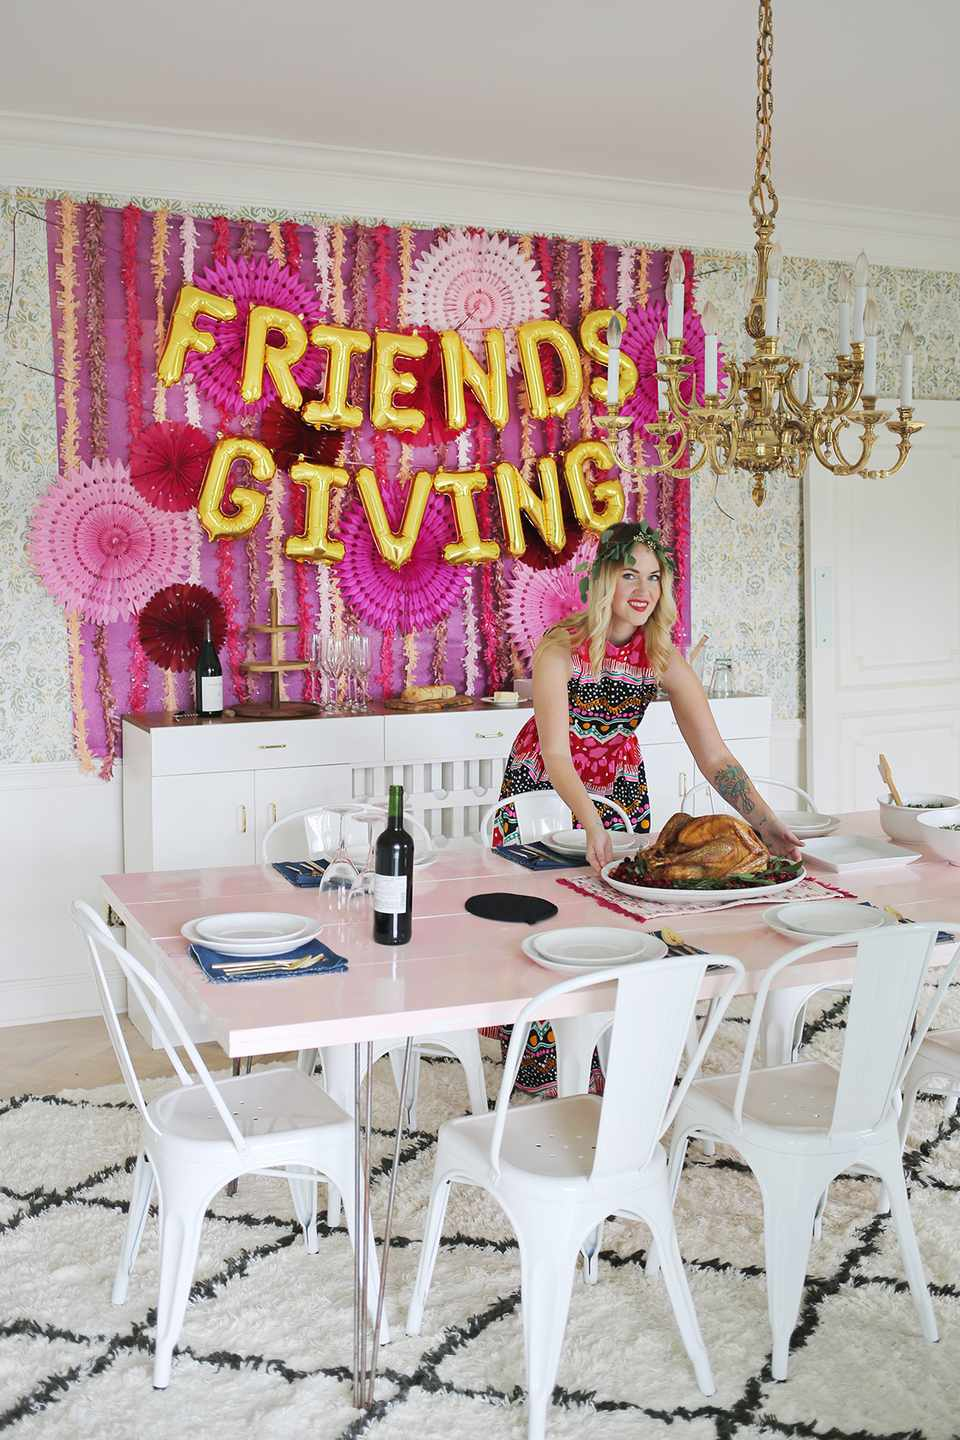 DIY Friendsgiving Party Backdrop